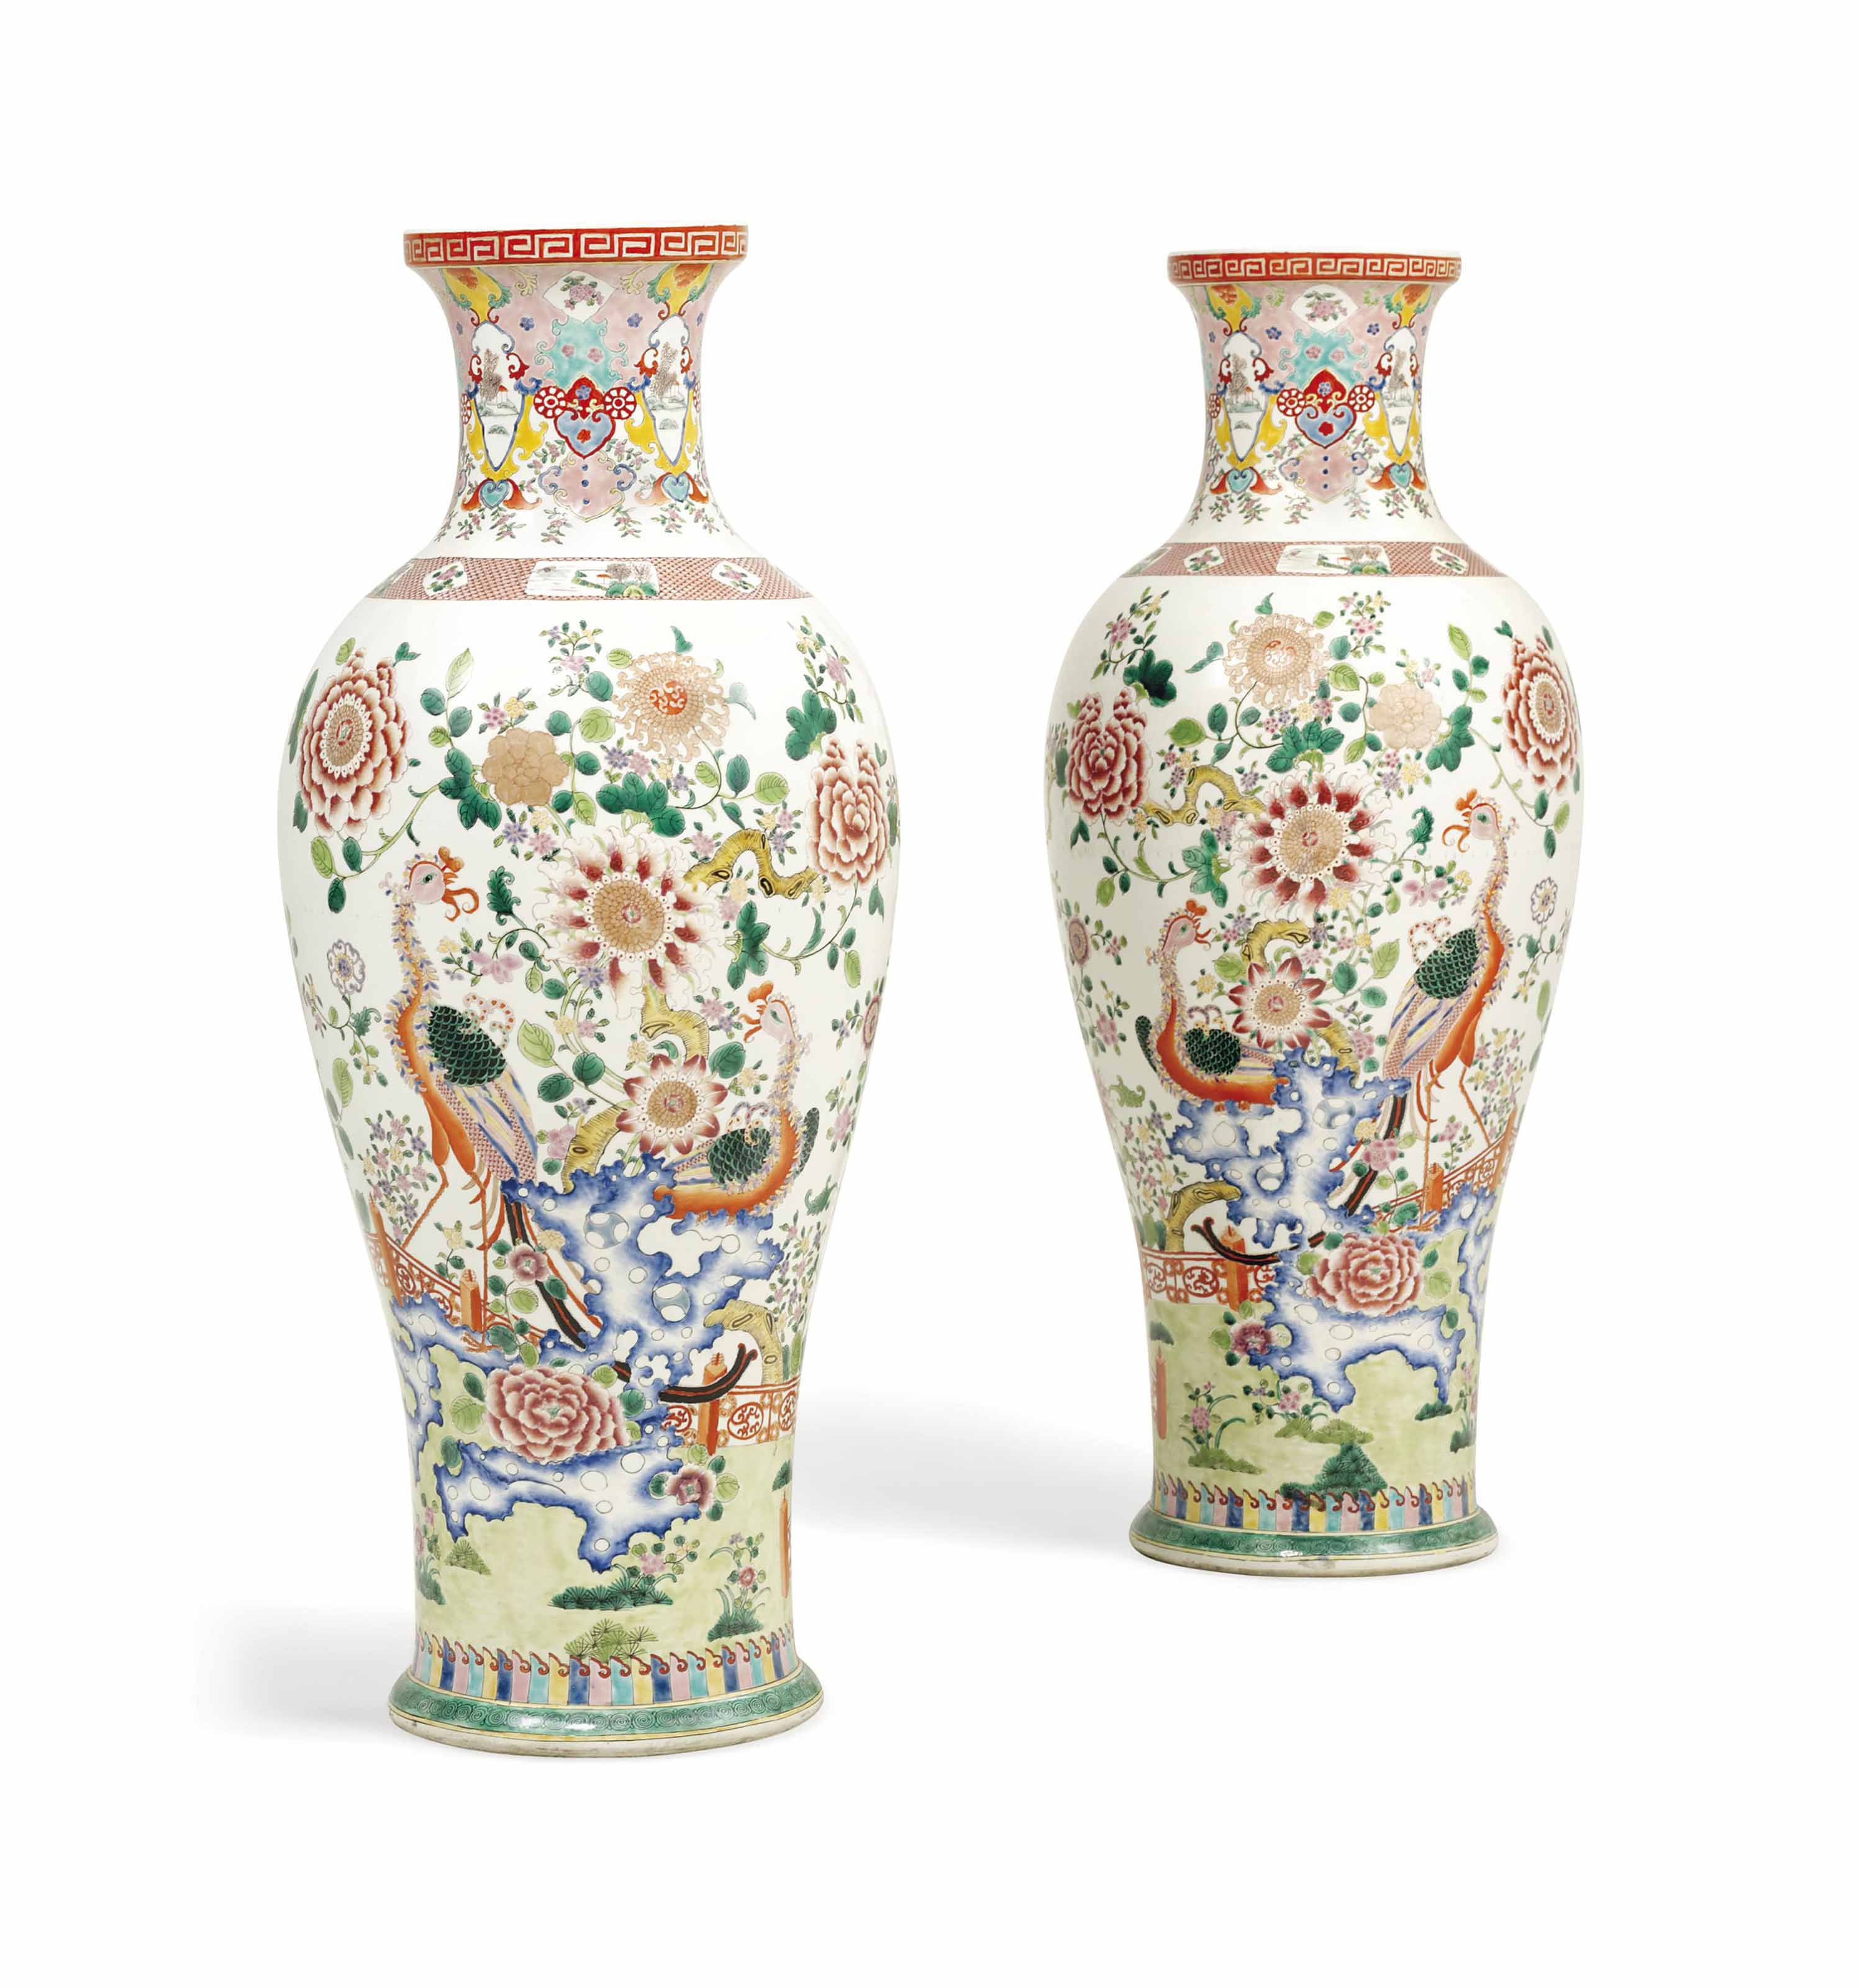 A PAIR OF LARGE CHINESE-STYLE BALUSTER VASES OF LARGE SIZE